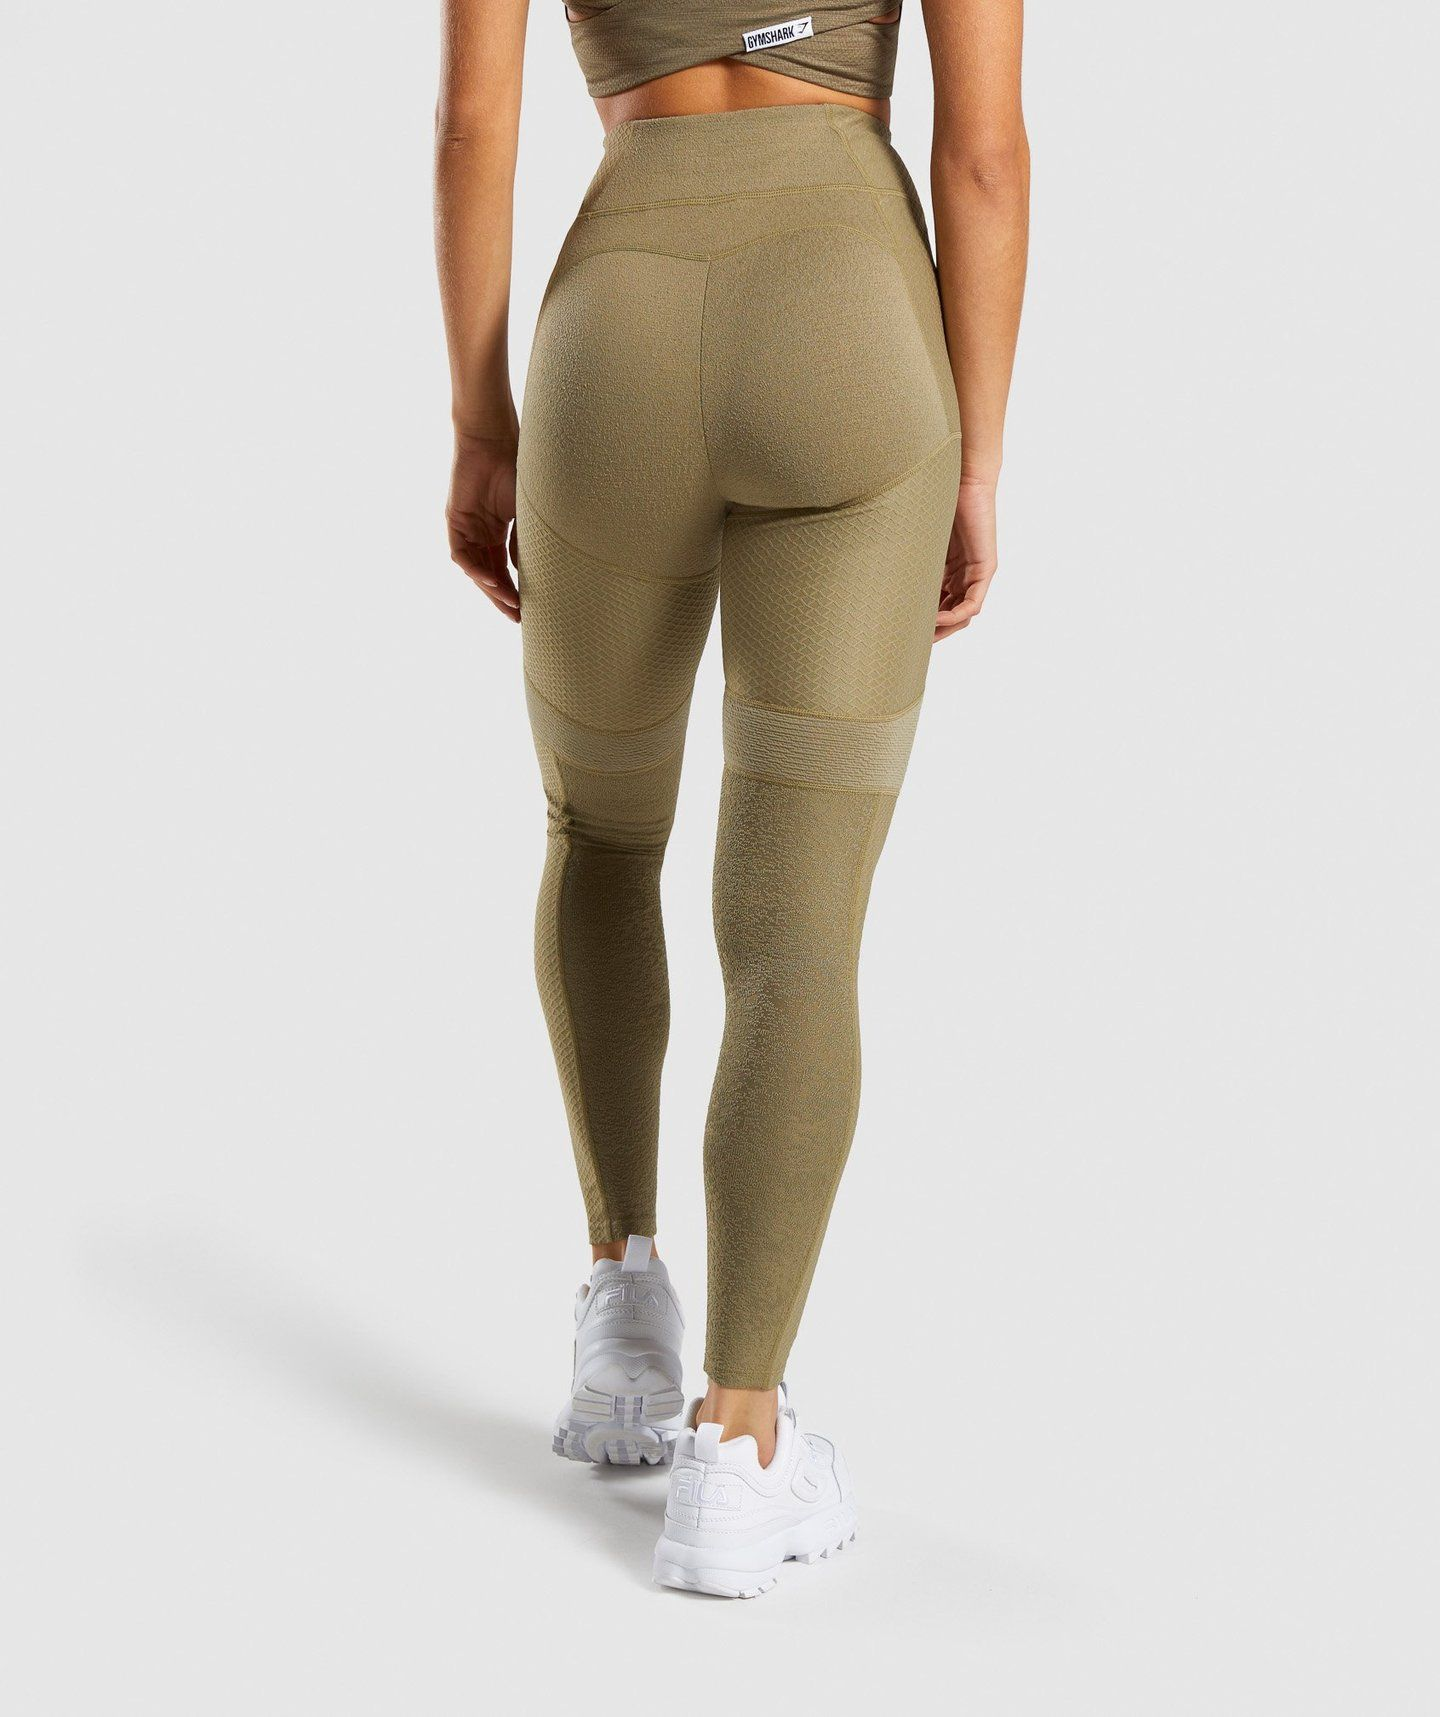 3ad40f43a9 Gymshark True Texture Leggings - Washed Khaki in 2019 | fit ...